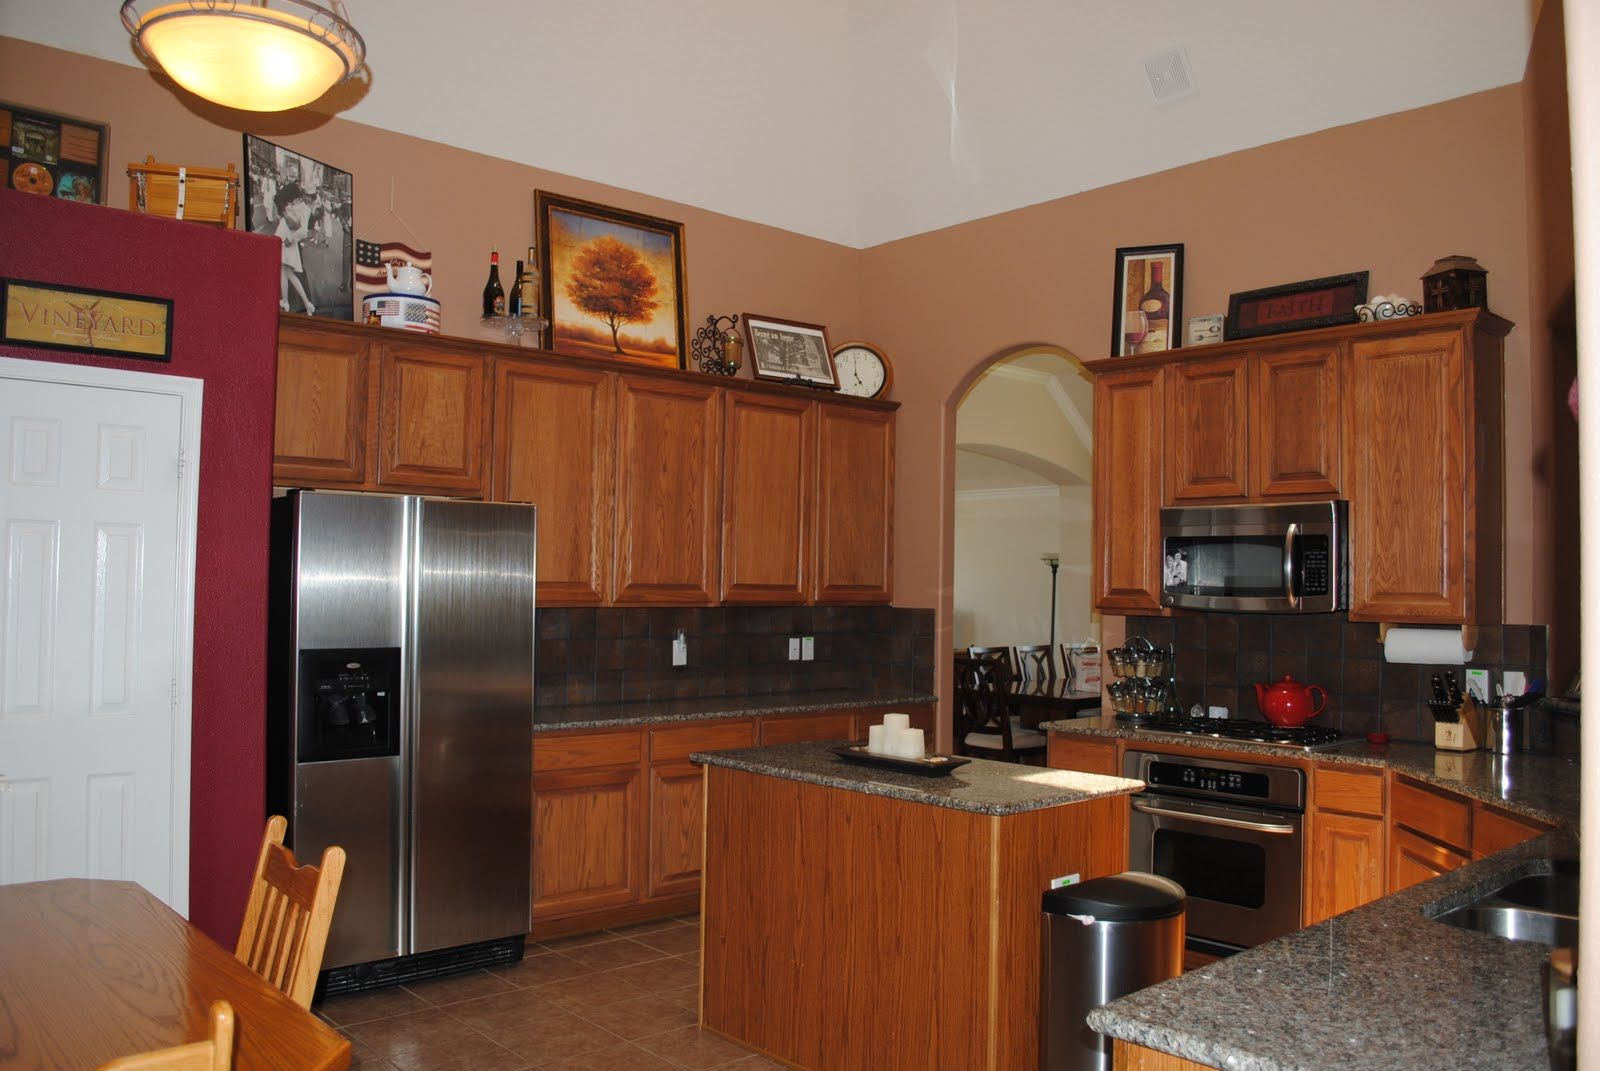 enchanting kitchen red accent wall | red accent wall in kitchen with brown cabinets - Google ...